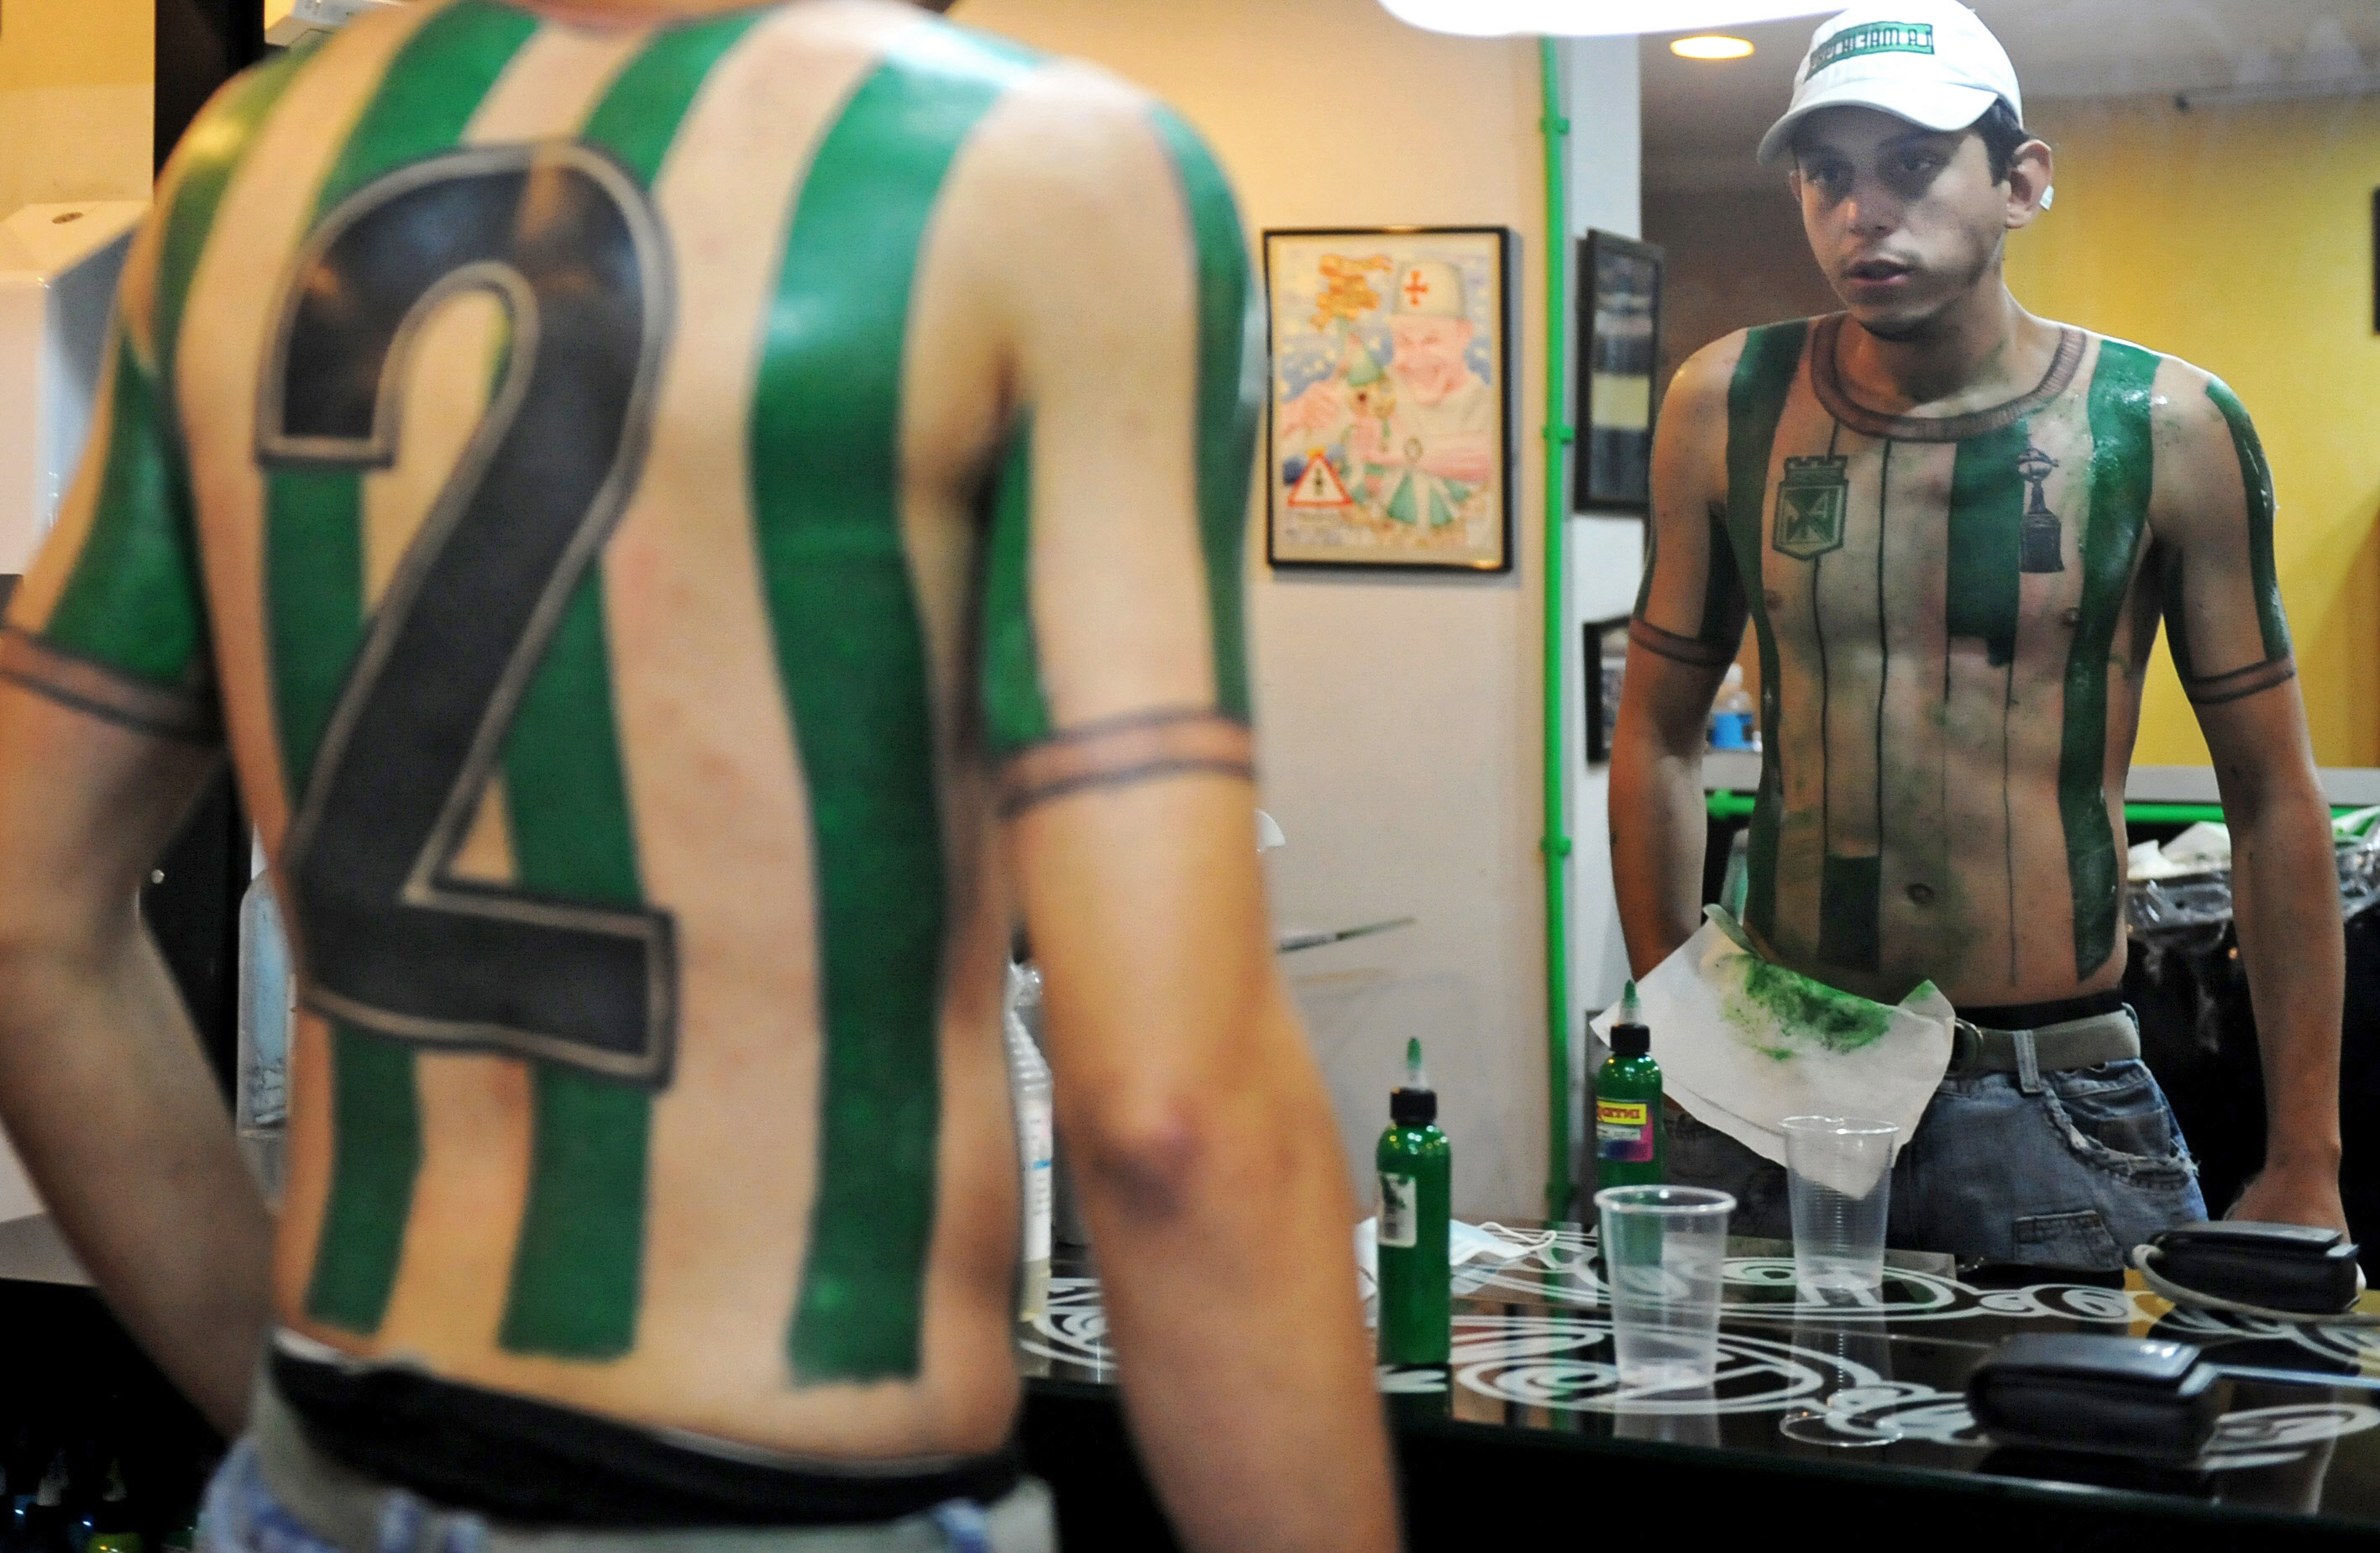 Colombian soccer fan Felipe Alvarez looks at his partially completed Atletico Nacional jersey tattoo in Medellin, Colombia on October 9, 2010.